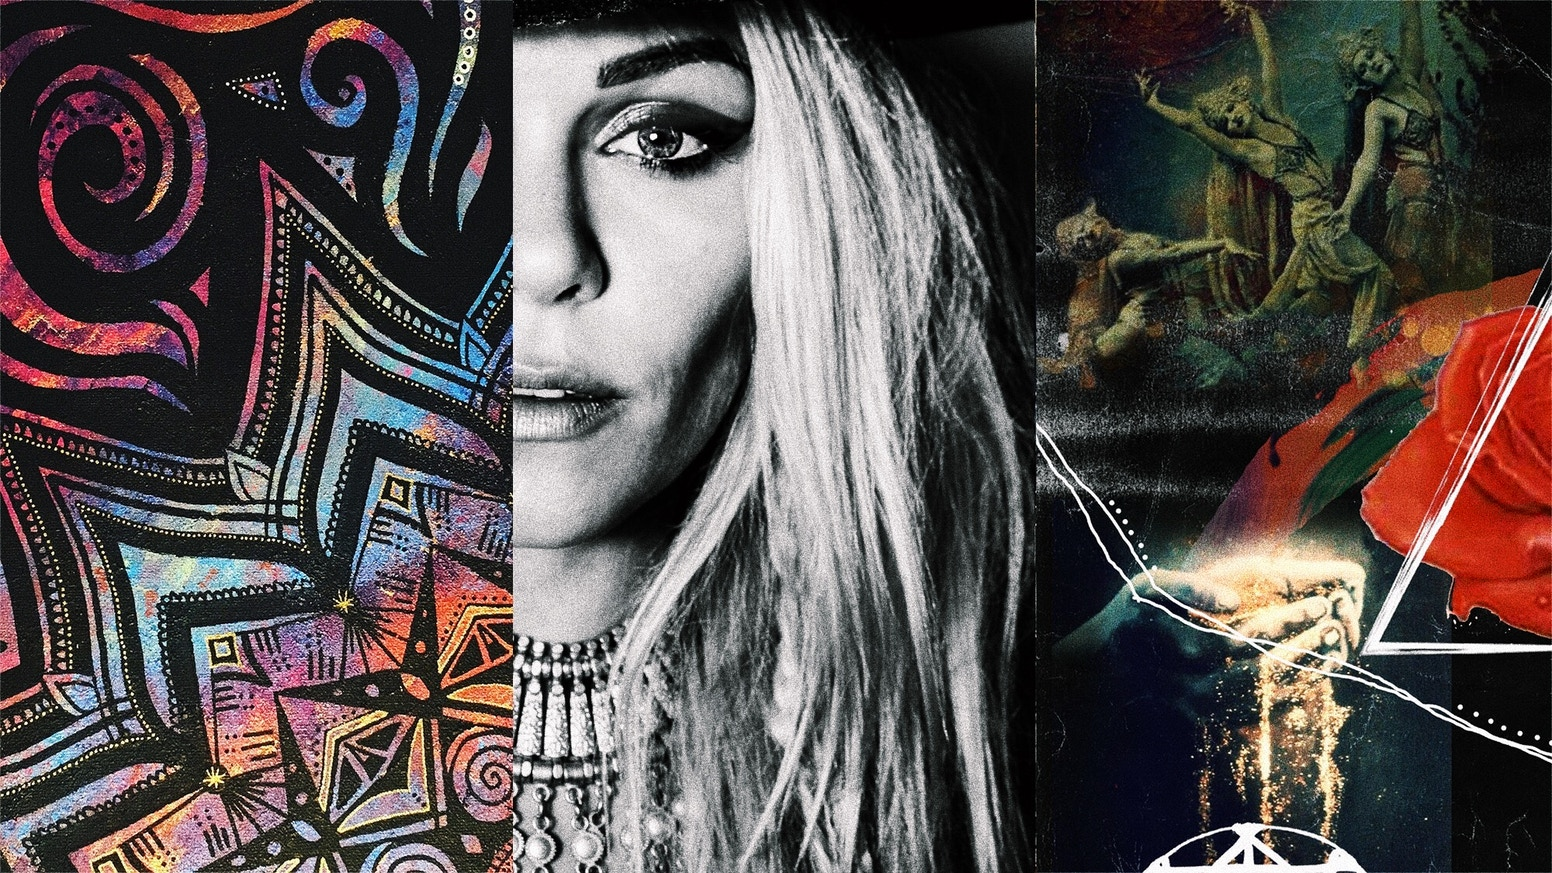 ARTMUSIC - 7 Songs  21 Artworks  Created with You  by Morgan Joanel